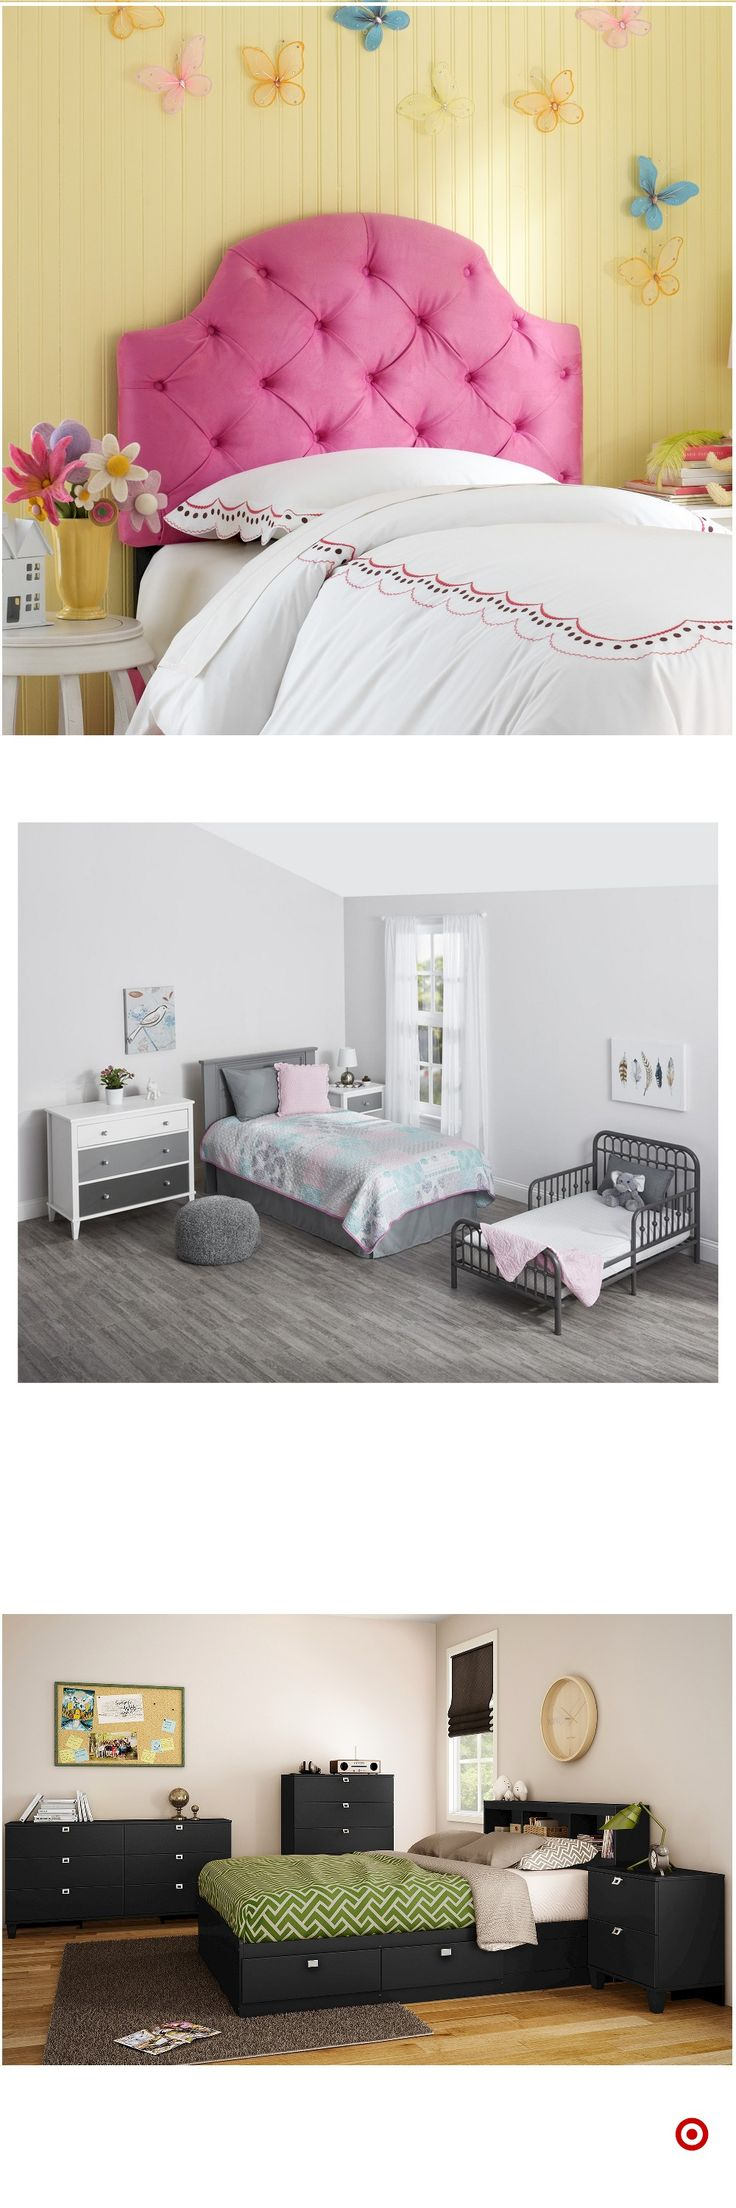 Shop Target for kids headboard you will love at great low prices. Free shipping on orders of $35+ or free same-day pick-up in store.